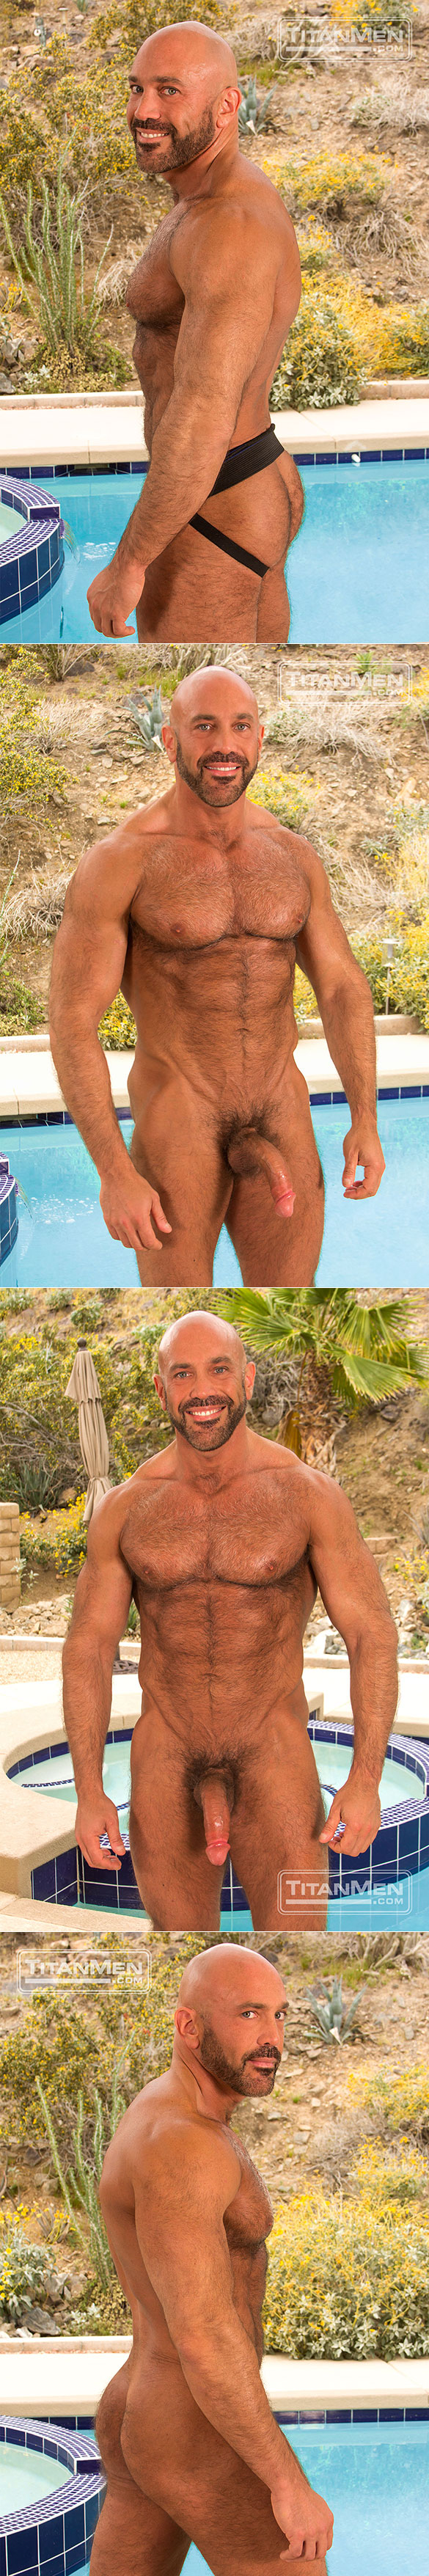 "TitanMen: Jesse Jackman fucks Julian Knowles in ""Big Brother"""